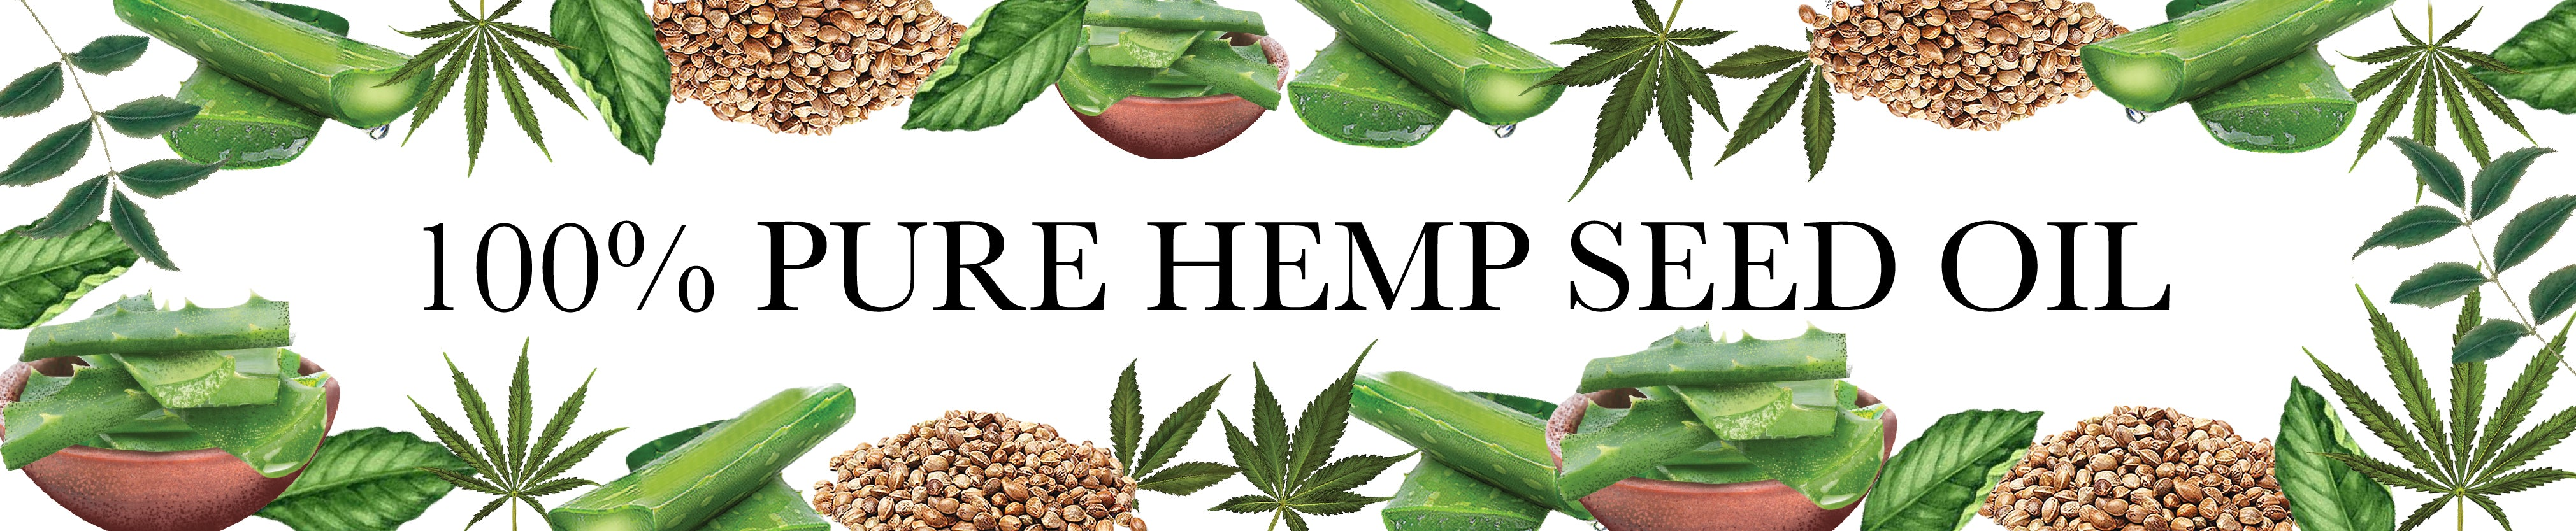 100% Pure Hemp Seed Oil